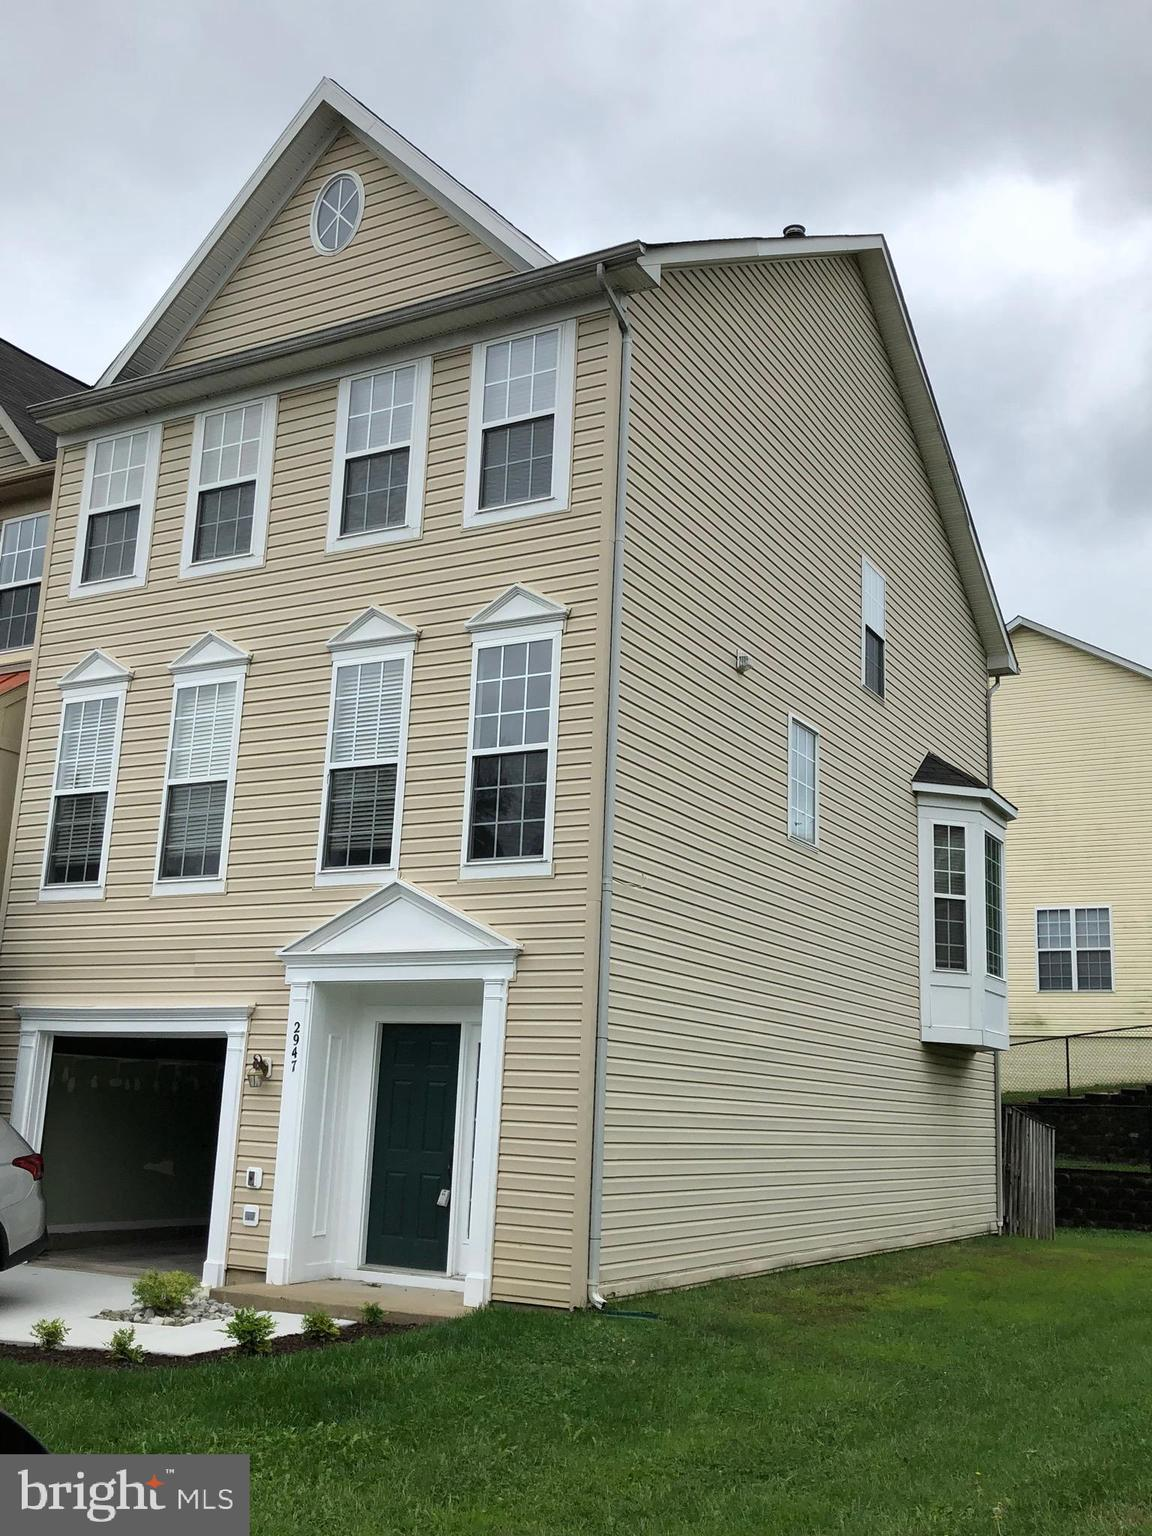 Wonderful end unit town-home in Markhams Grant, with 3 bedrooms, 4 baths - 2 full 2 half. Walkout ba